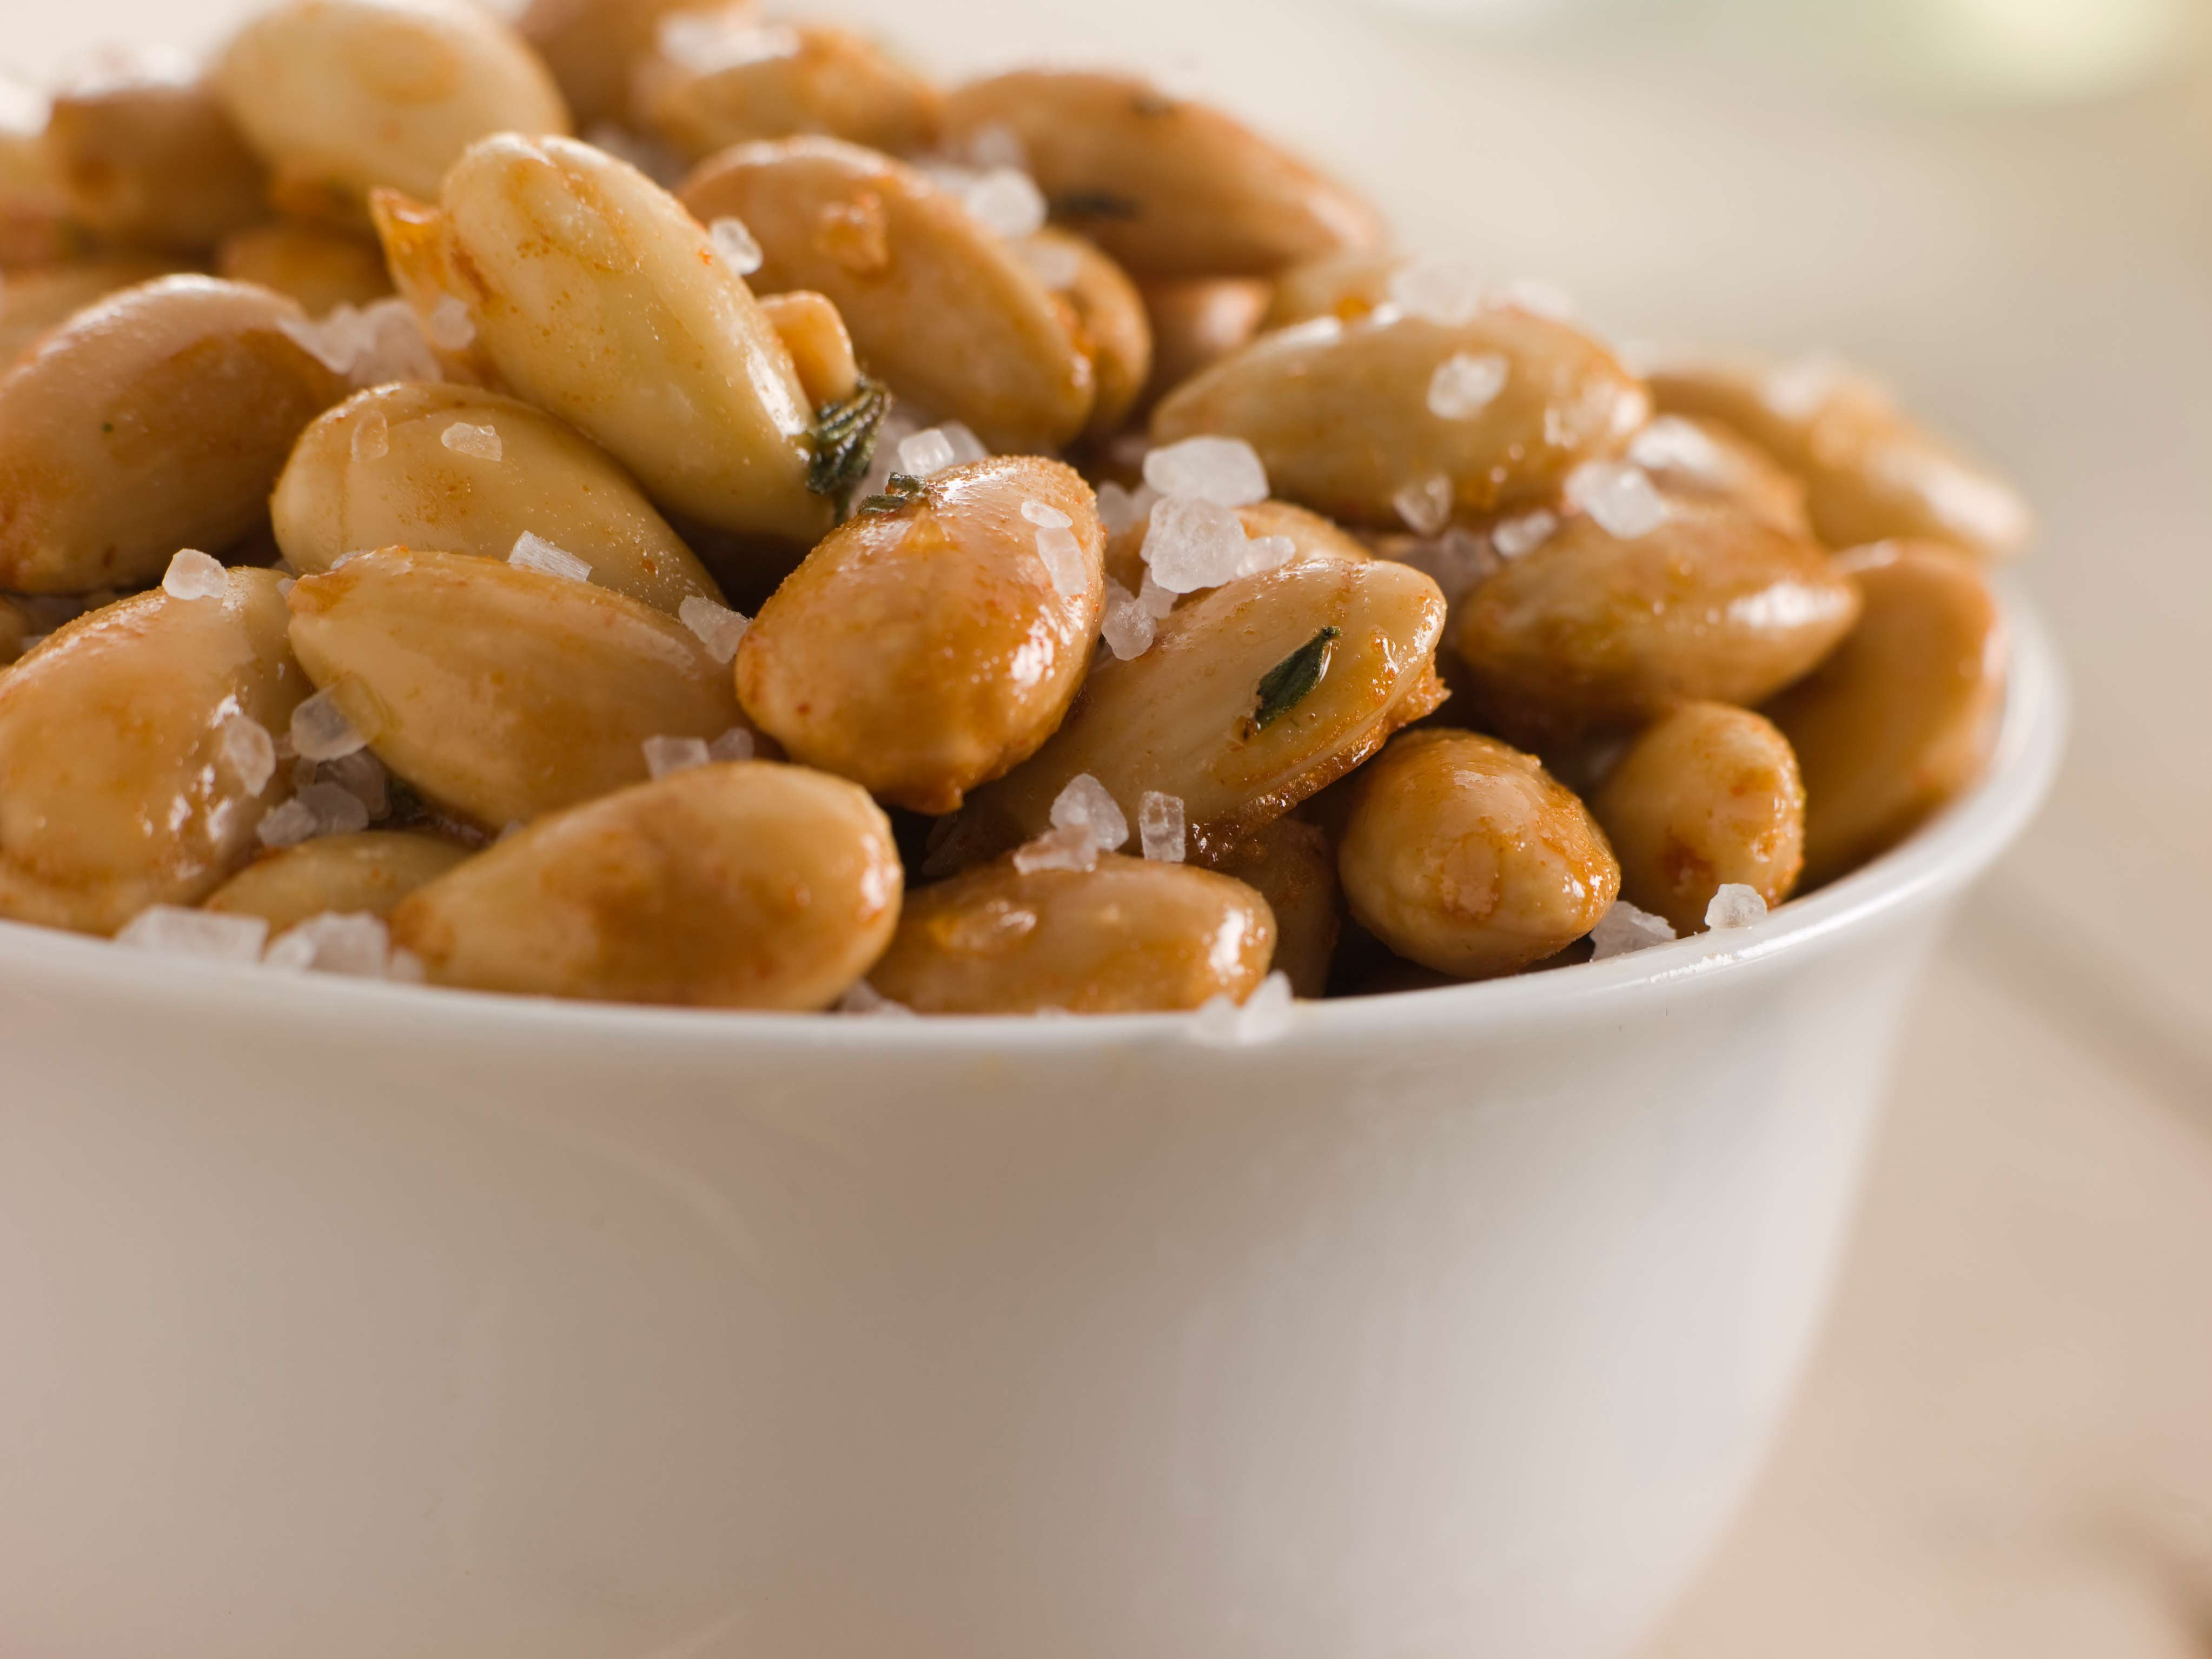 In the kitchen with Kelley: Spicy toasted almonds